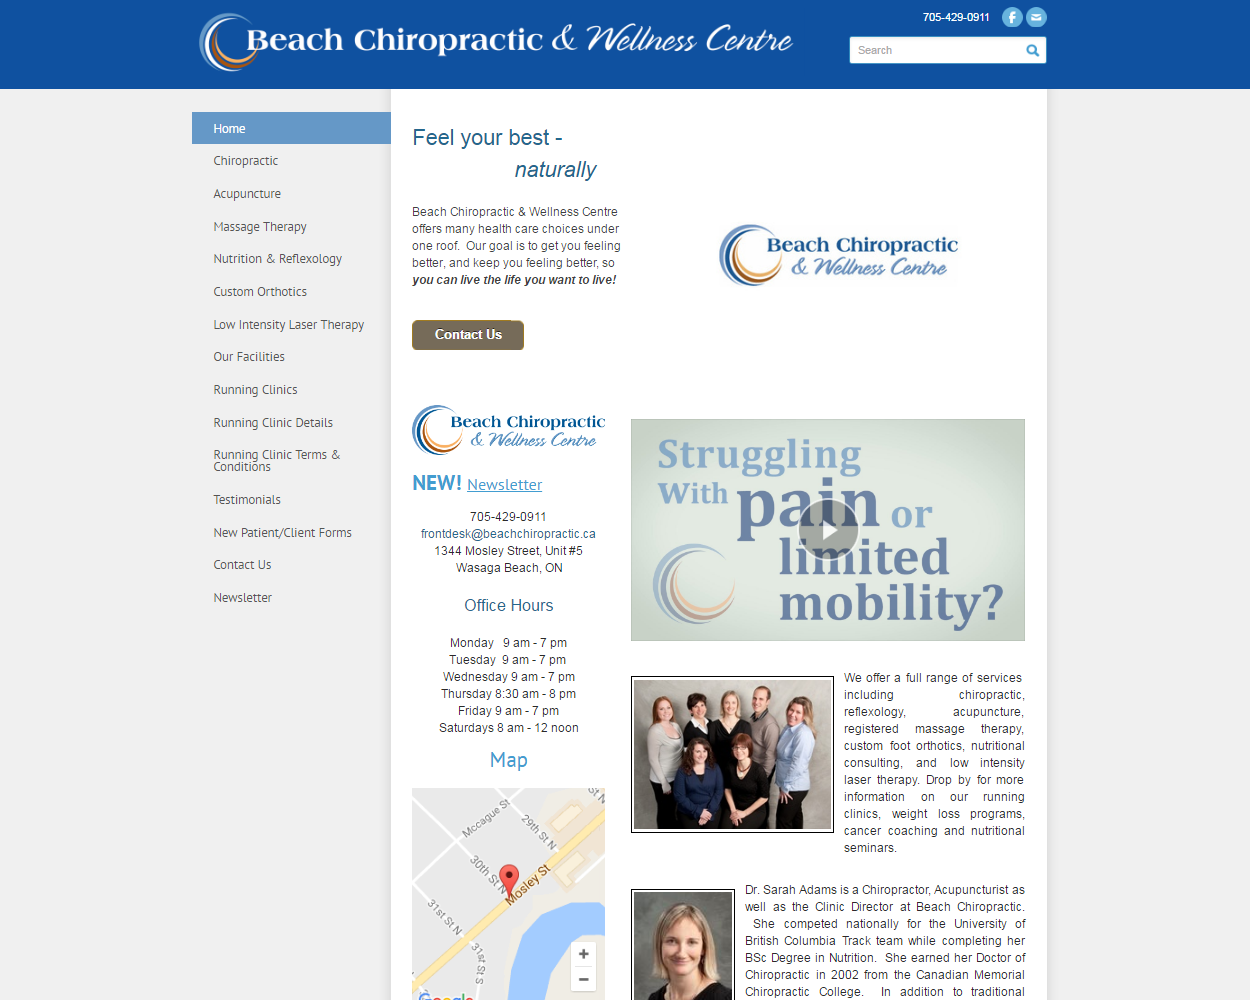 Beach Chiropractic & Wellness Centre